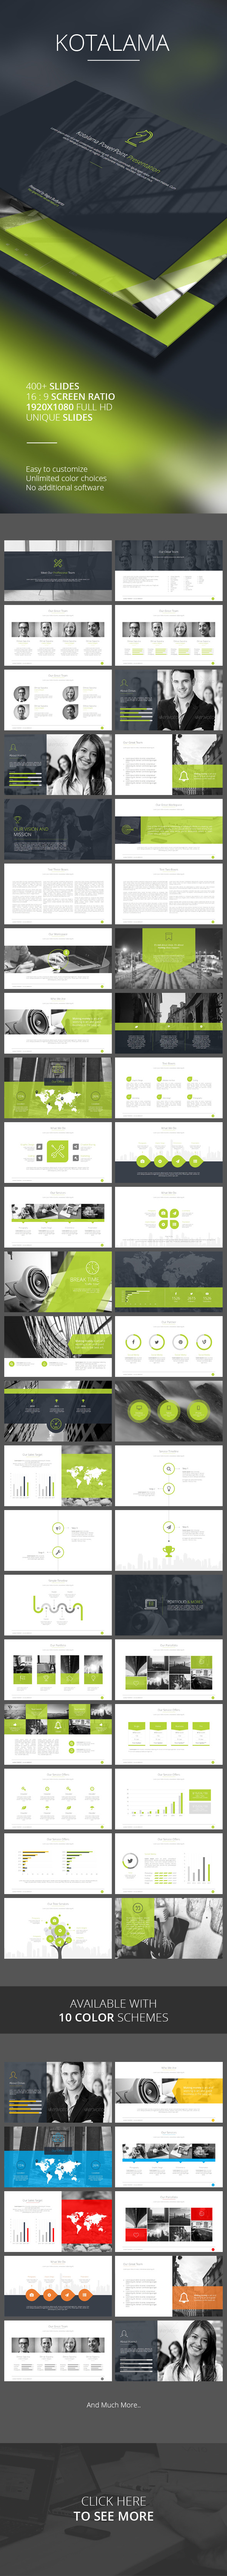 Kotalama PowerPoint Template